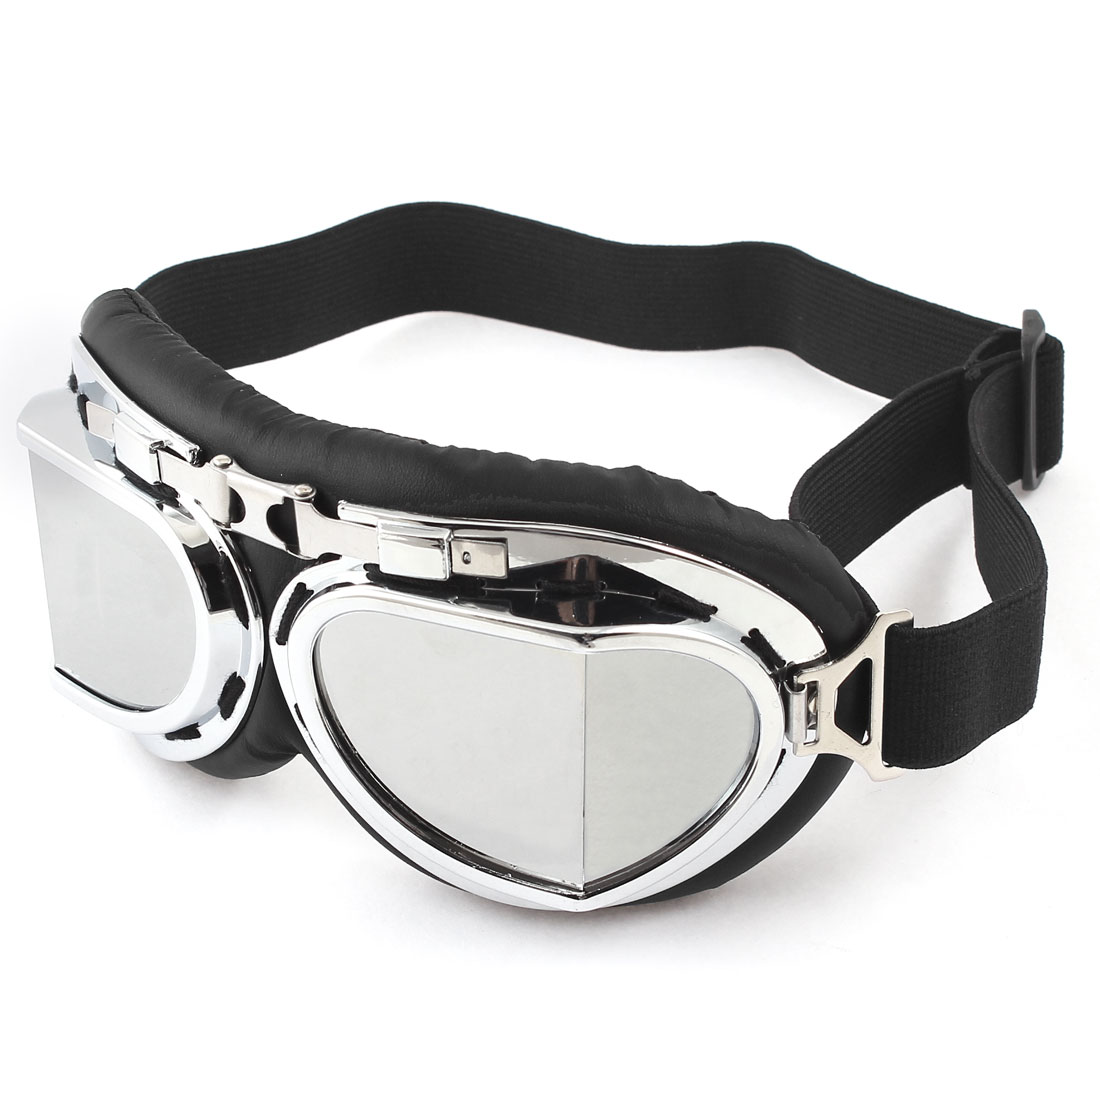 Unique Bargains Cycling Skiing Ski Racing Silver Tone Lens Goggles Eyewear Protective Glasses by